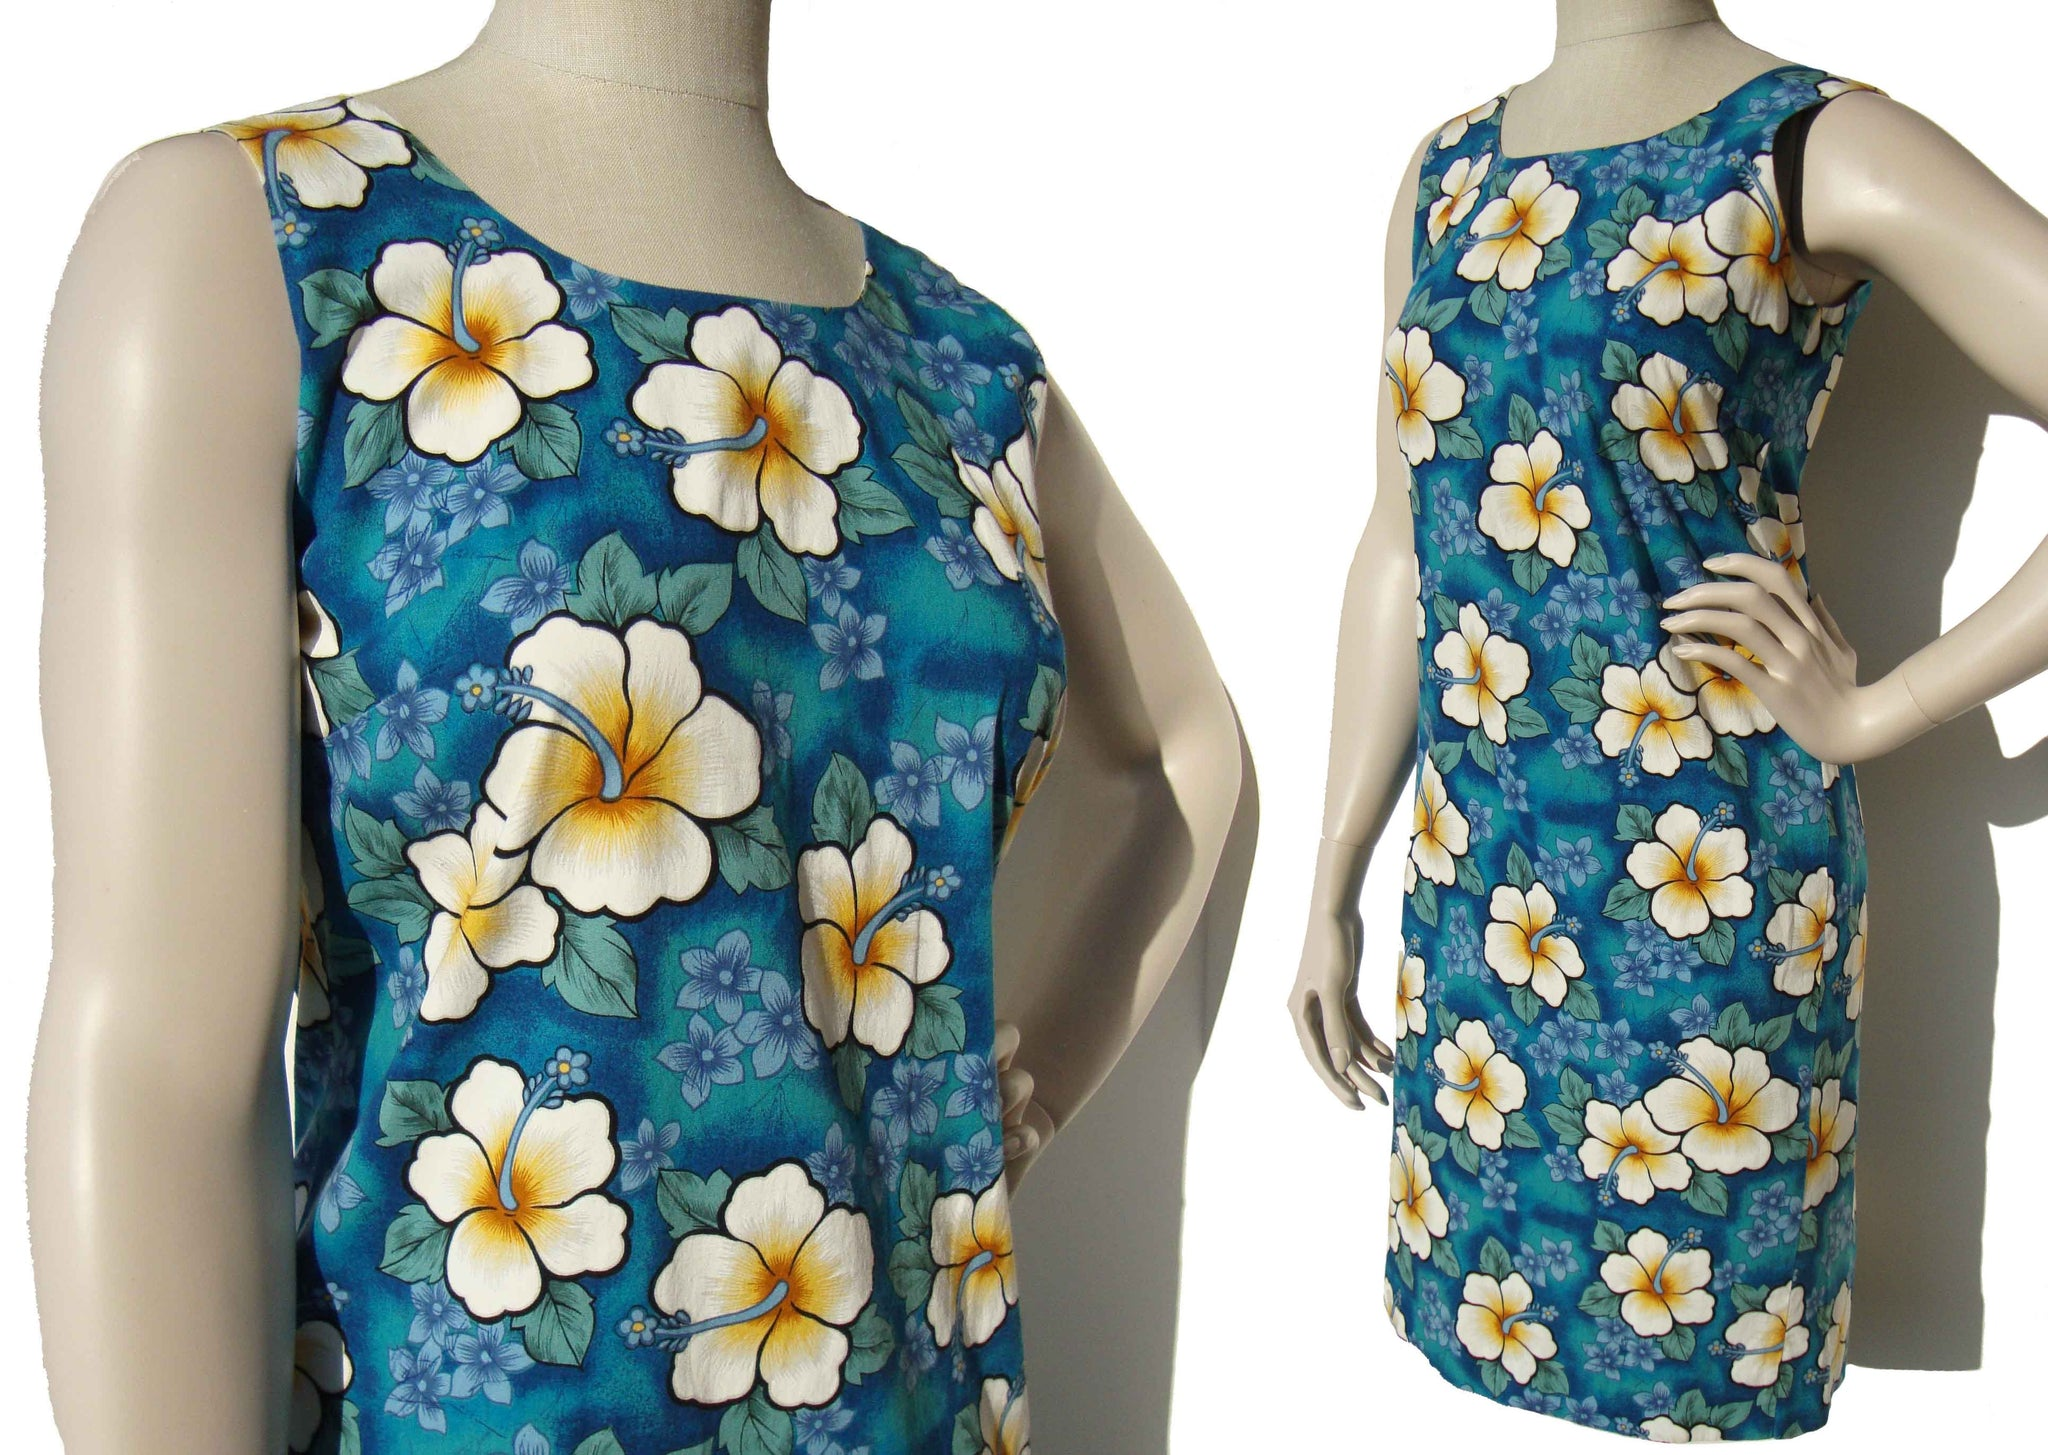 Kapaia Stitchery Dress